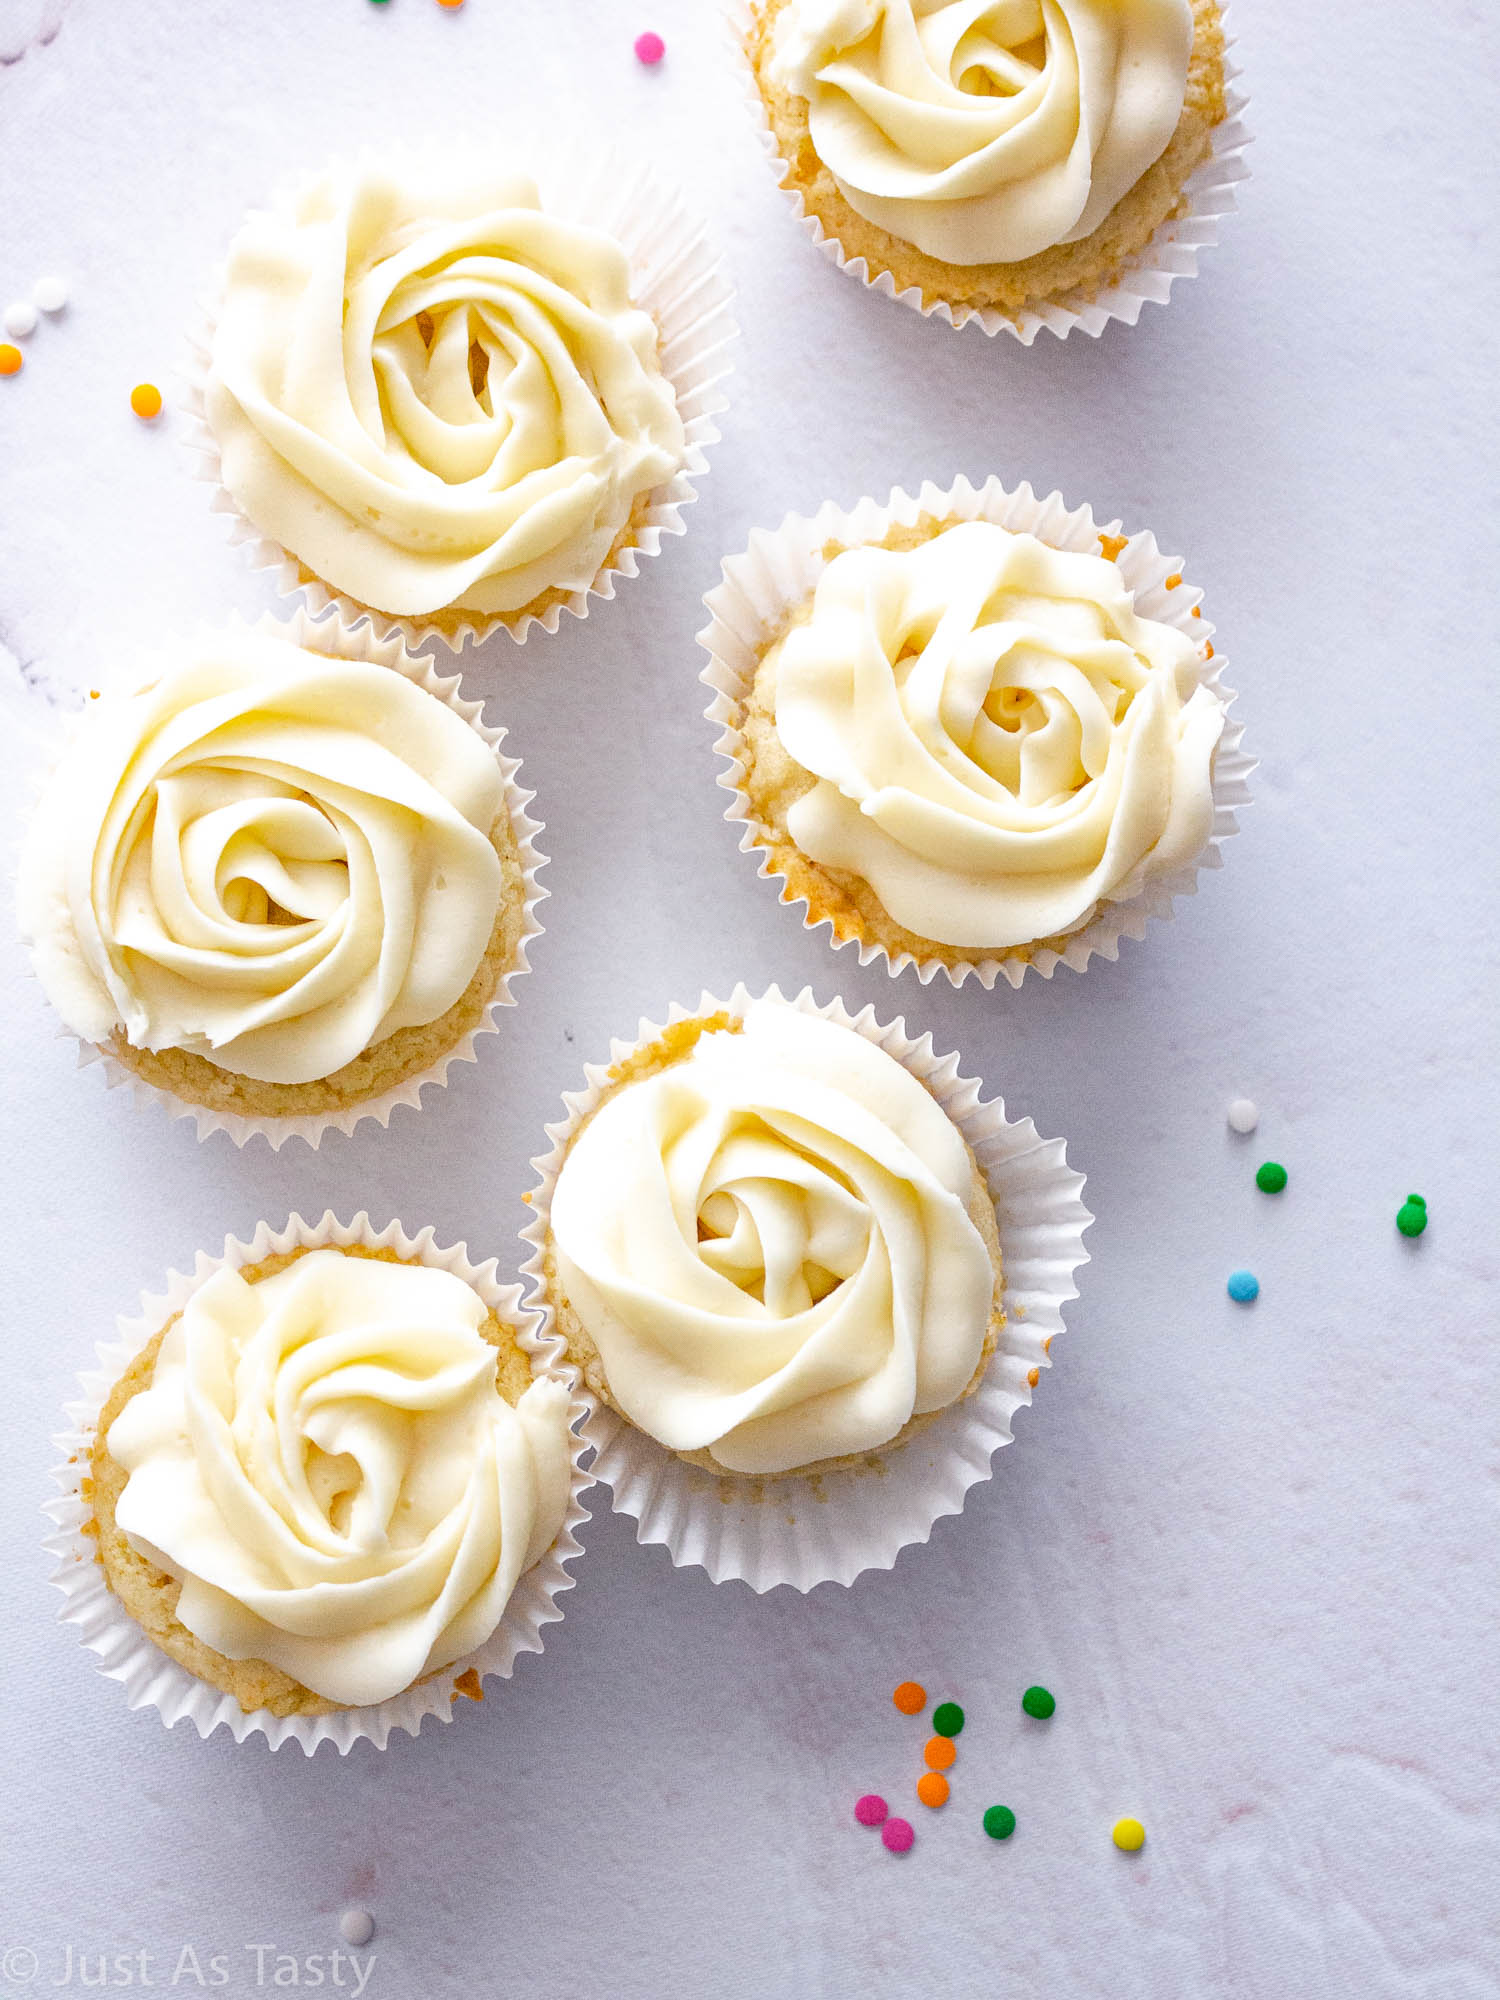 Frosted vanilla cupcakes on a white surface.